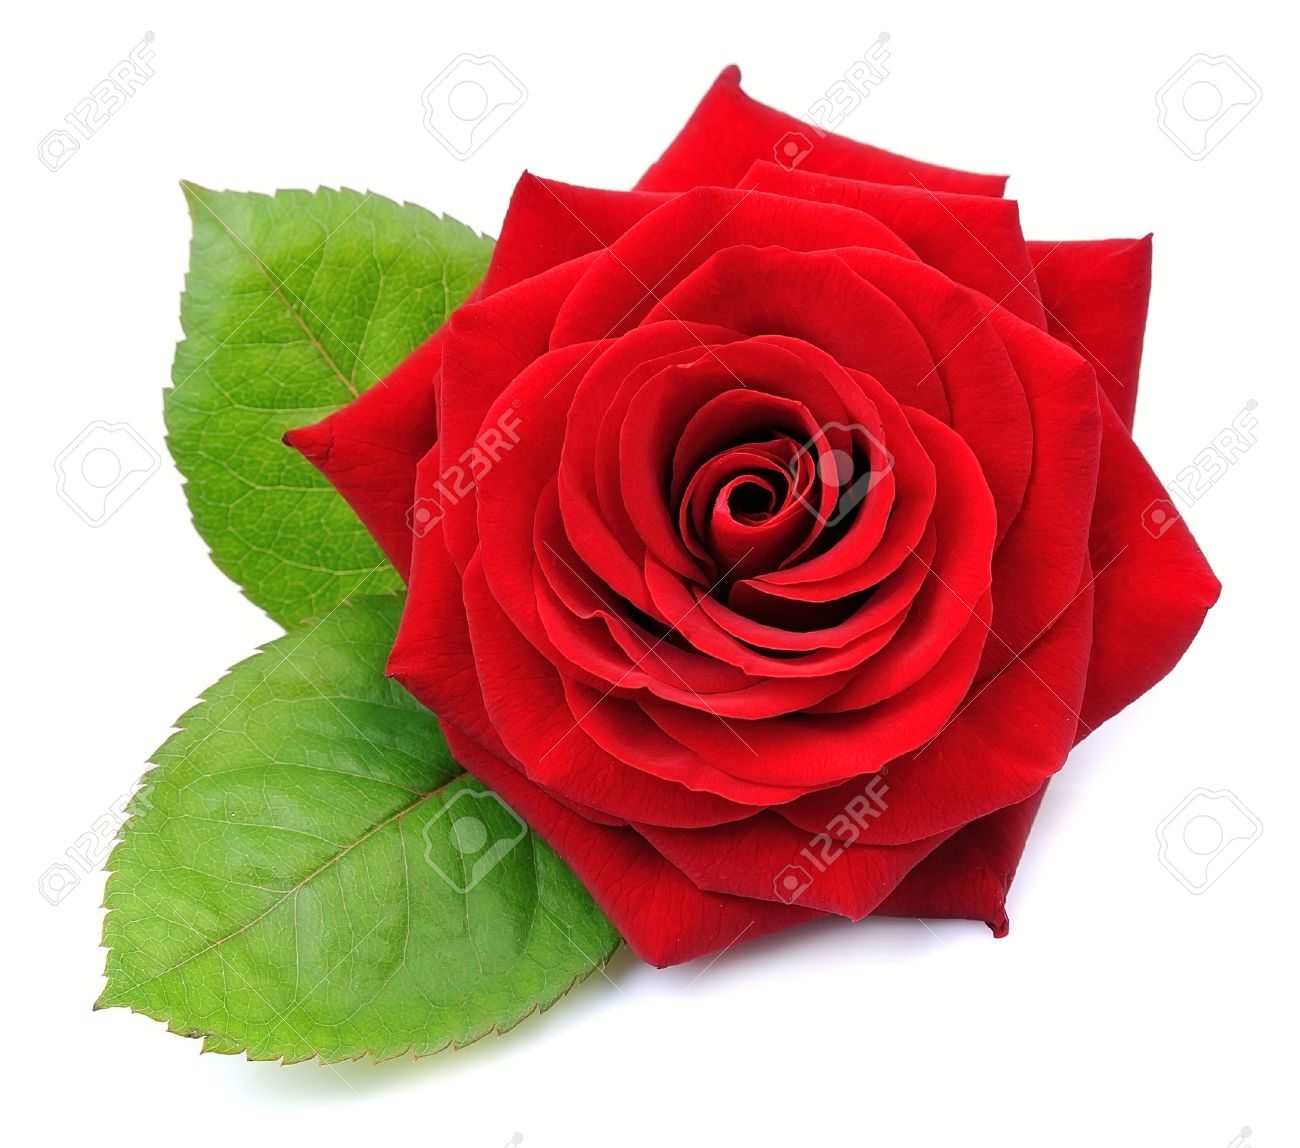 Red rose isolated on white background - 52234787